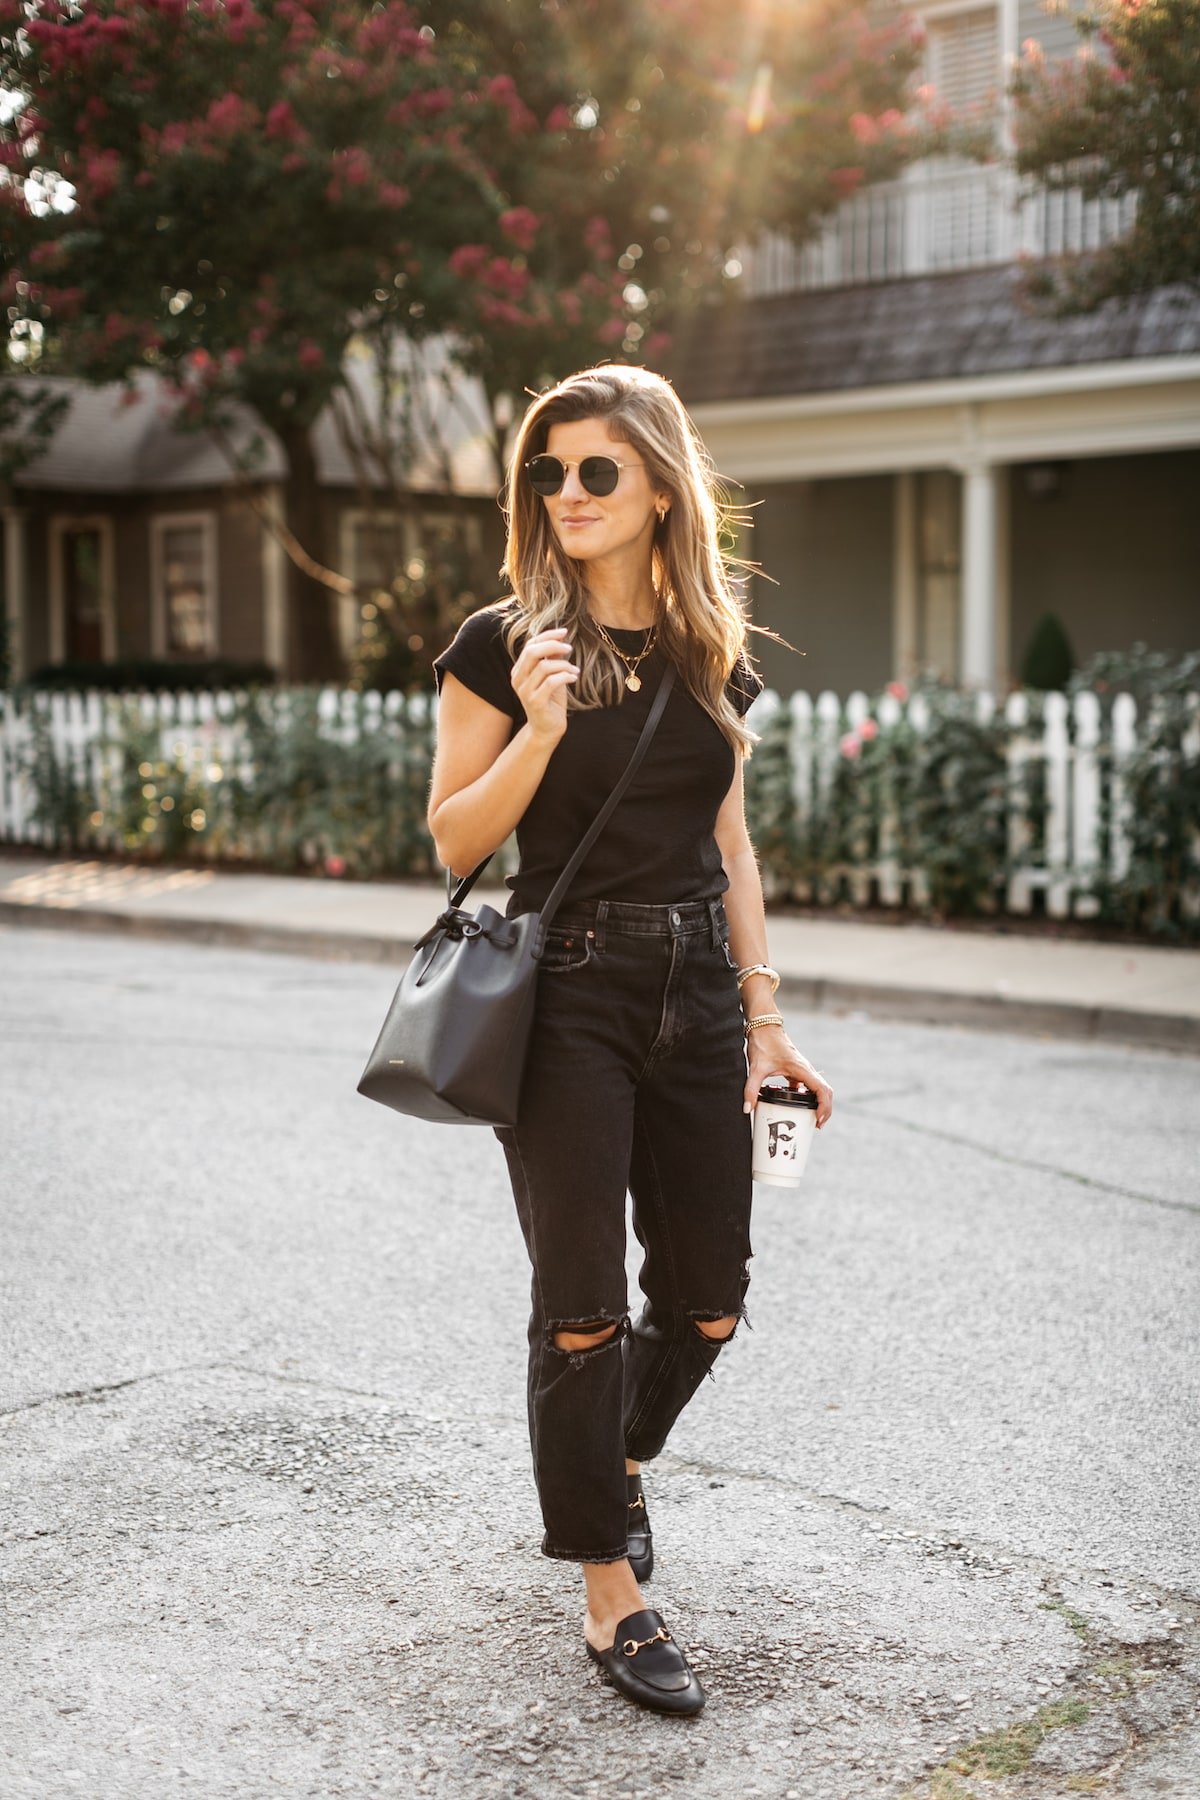 Brighton Butler wearing black tee with black jeans and black bucket bag